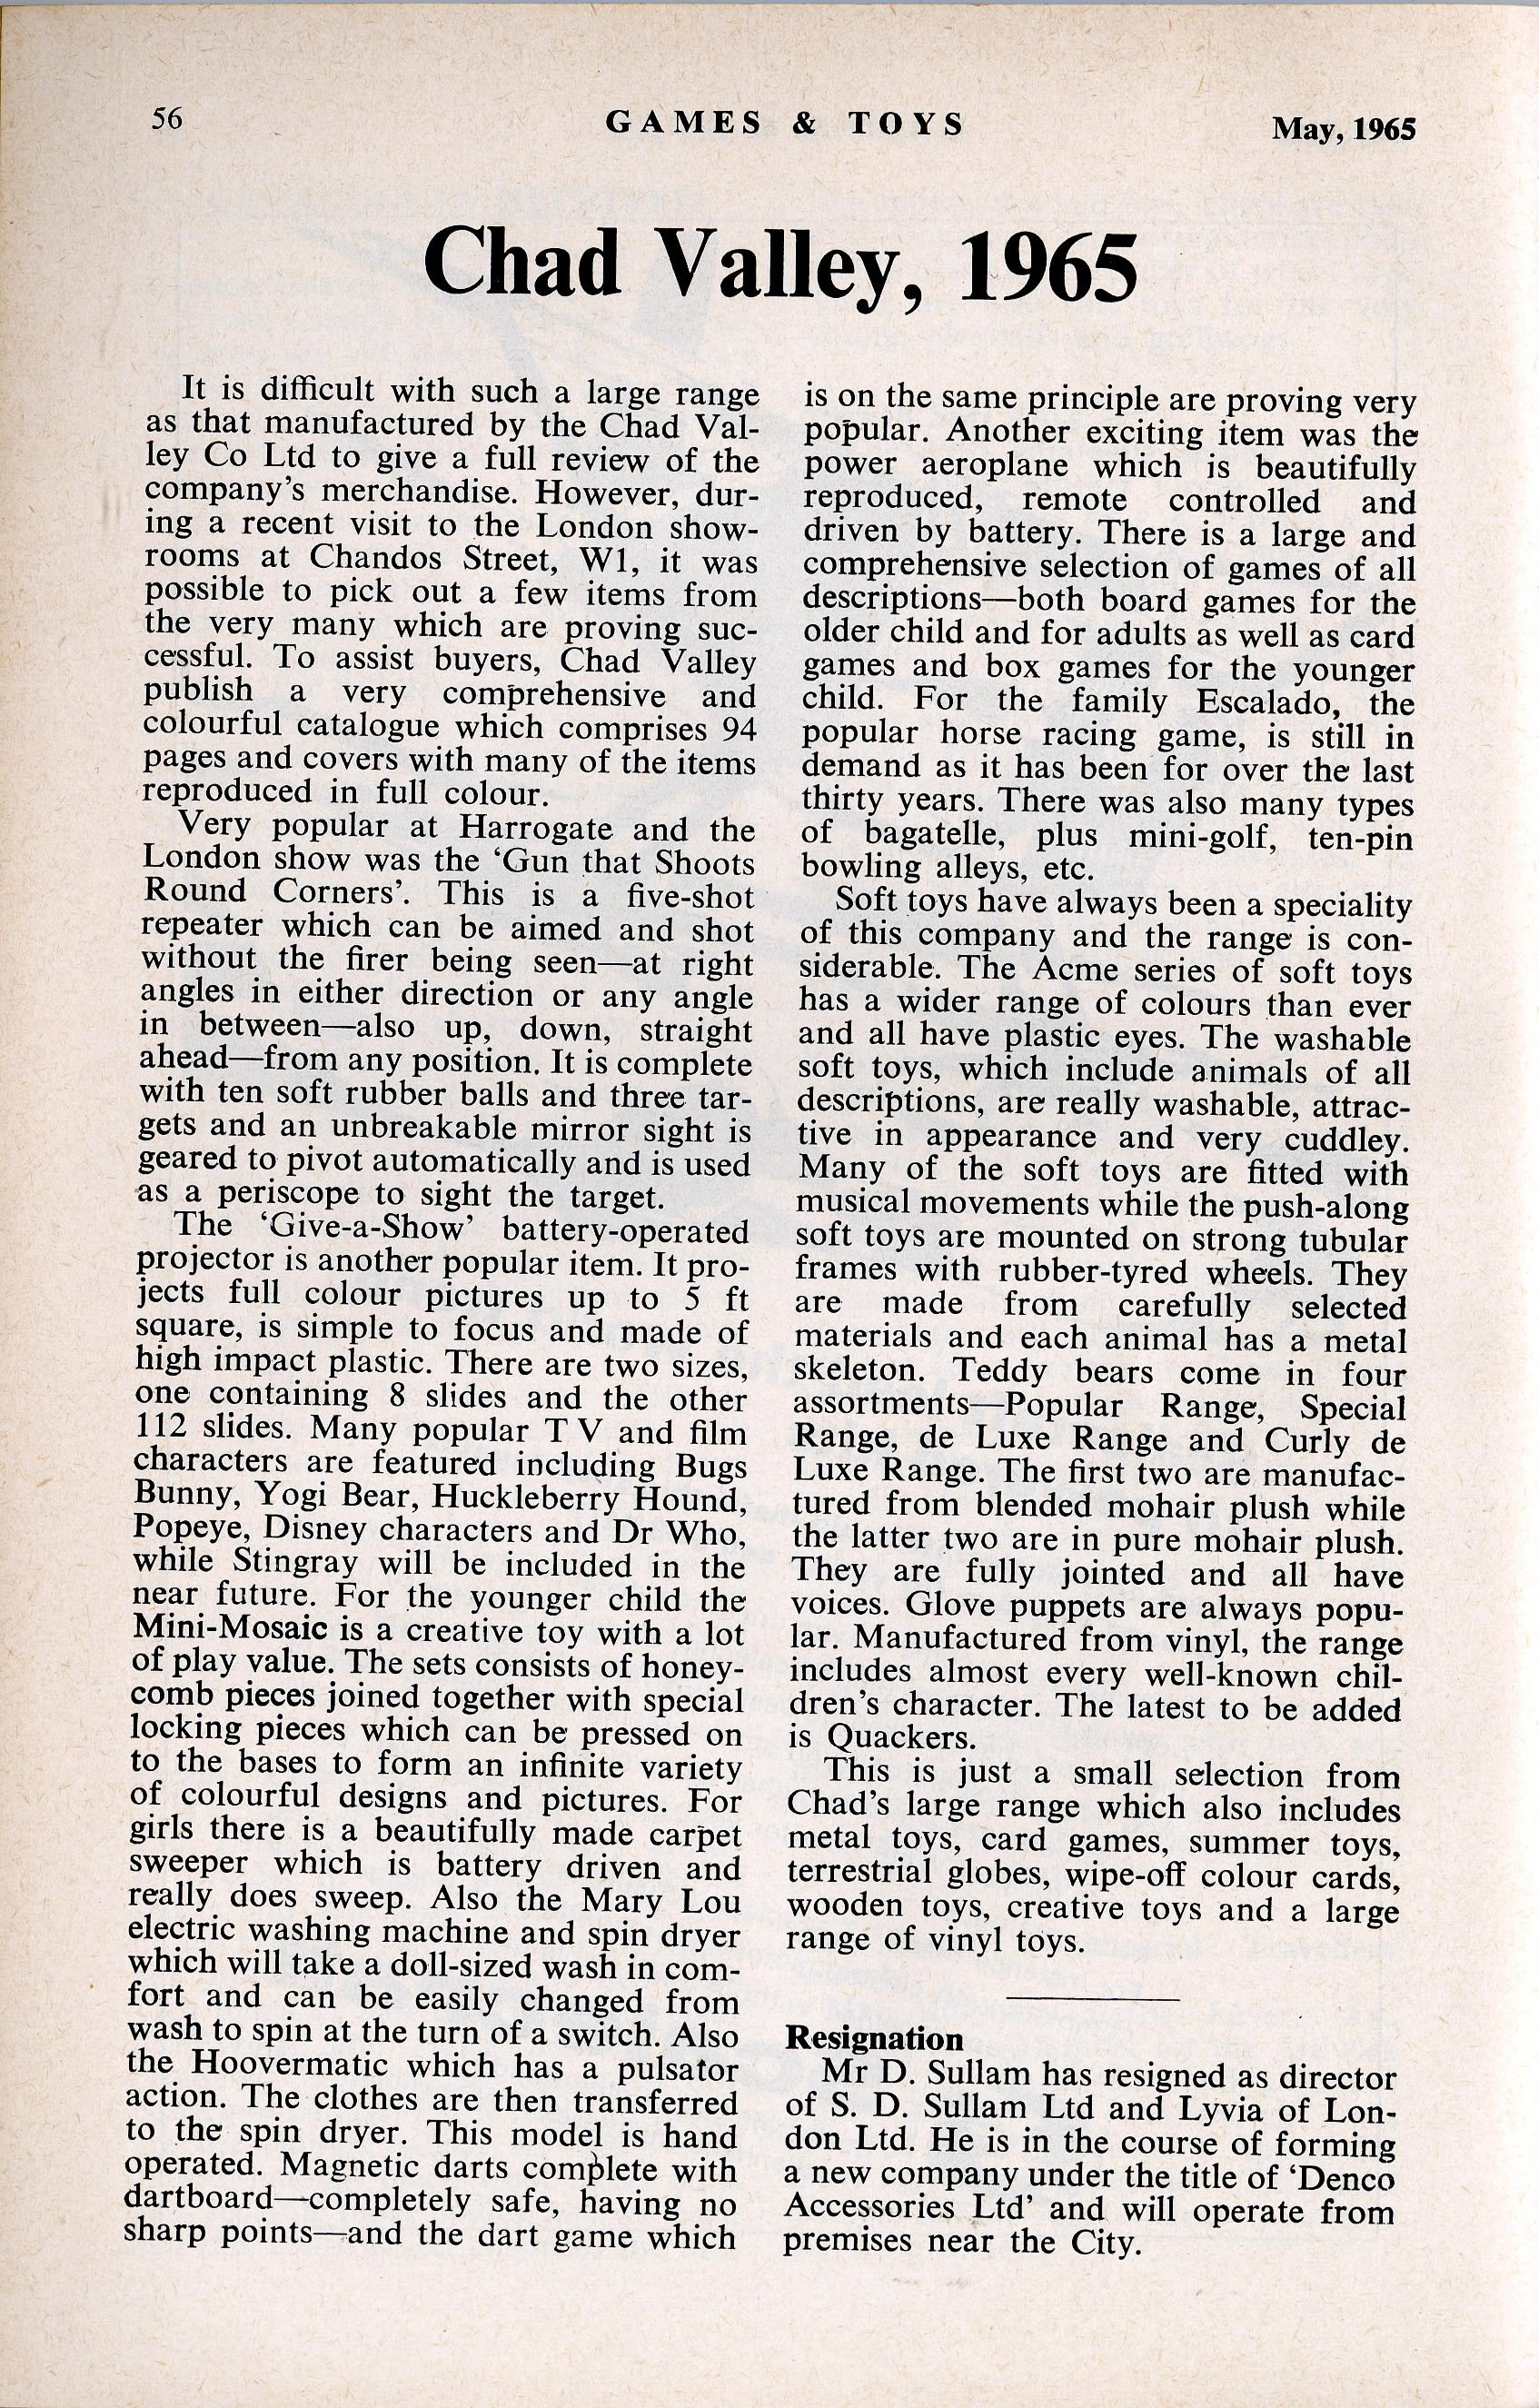 Games and Toys, May 1965, article about Chad Valley including introduction of Doctor Who Give-A-Show Projector